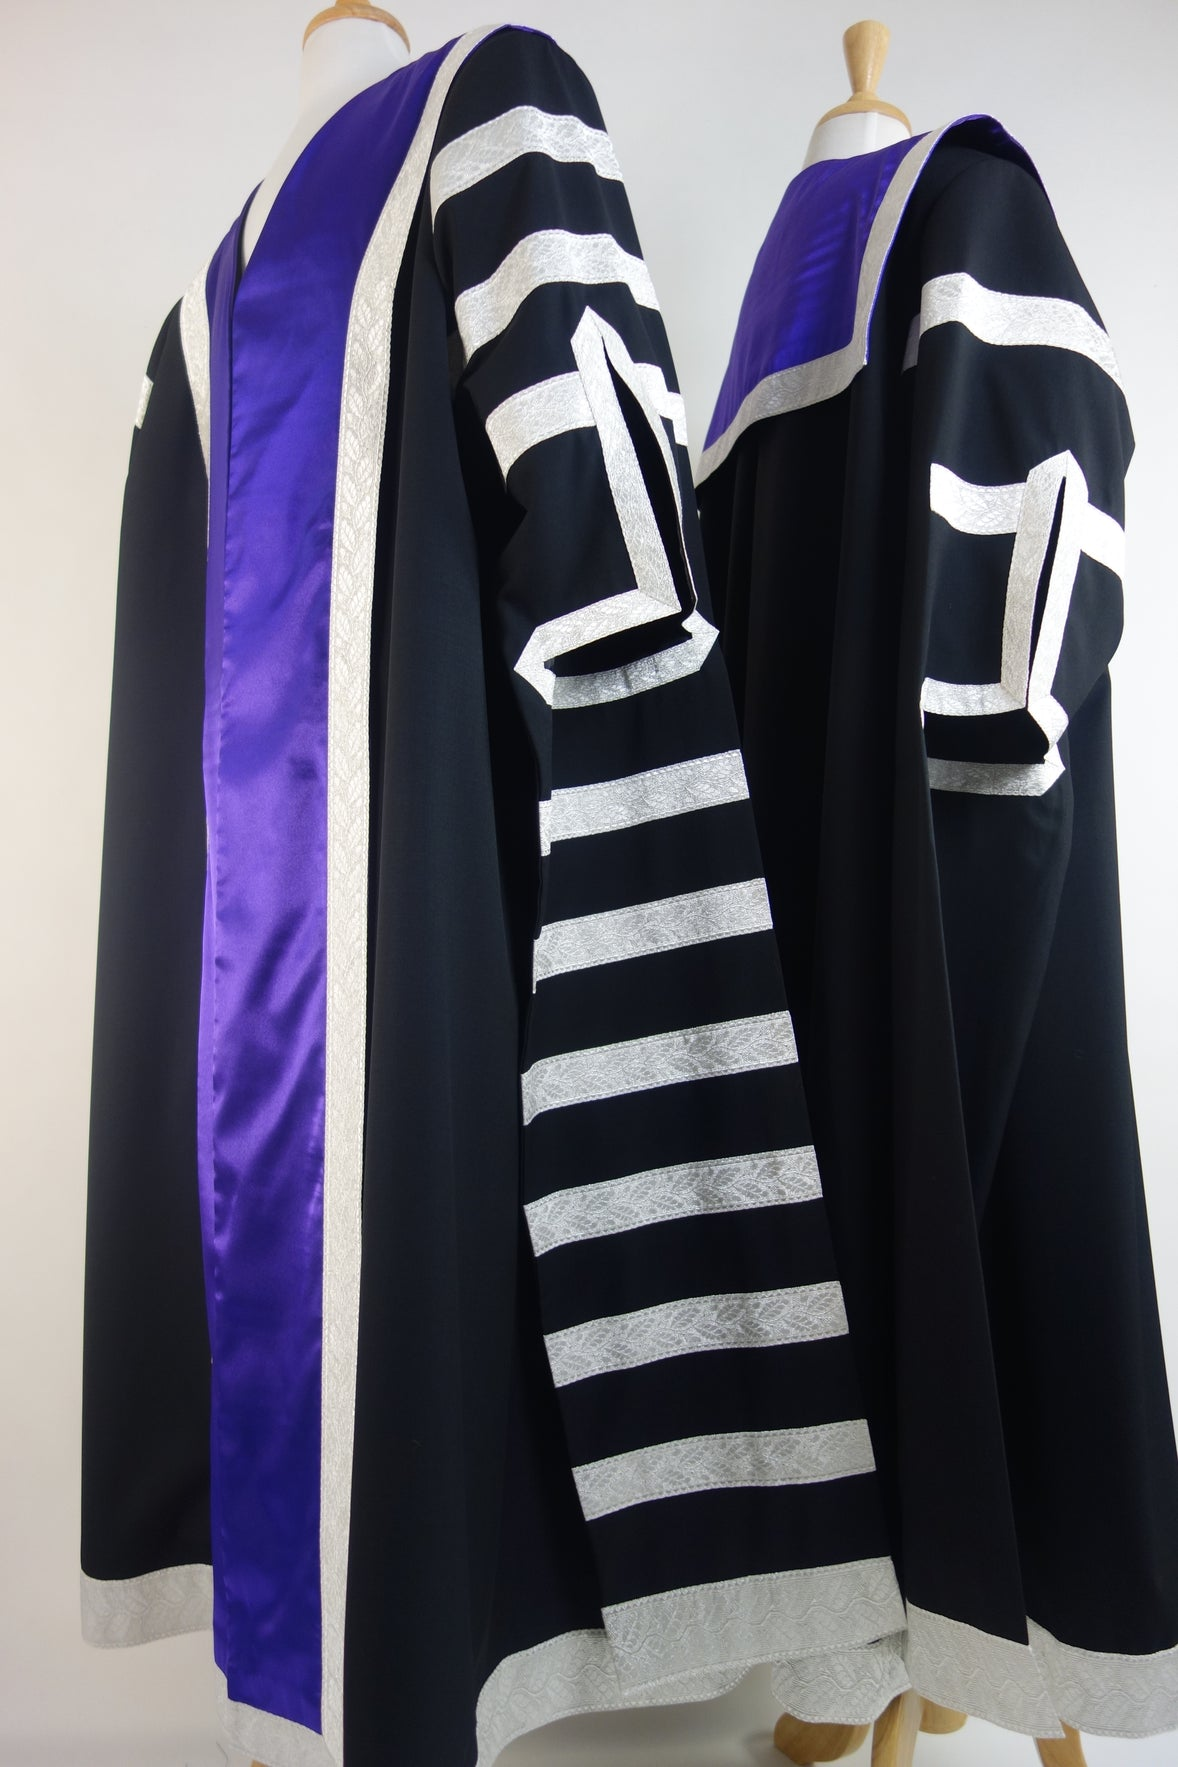 ACER Chancellor & Vice Chancellor Robes